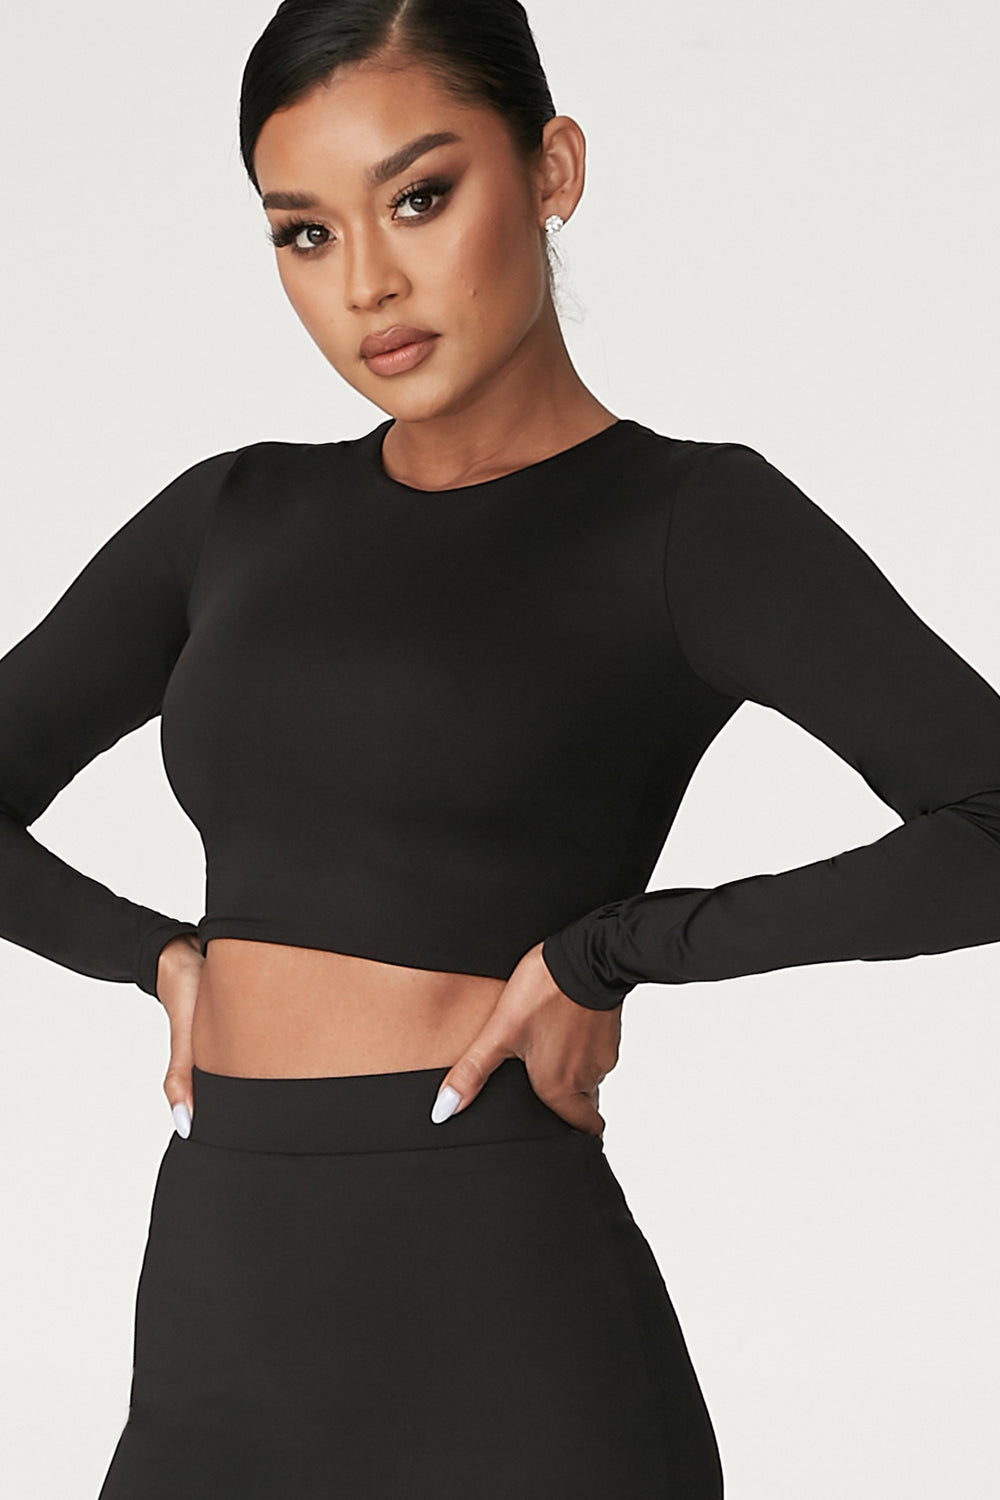 Emely Long Sleeve Crop Top  - Black - MESHKI